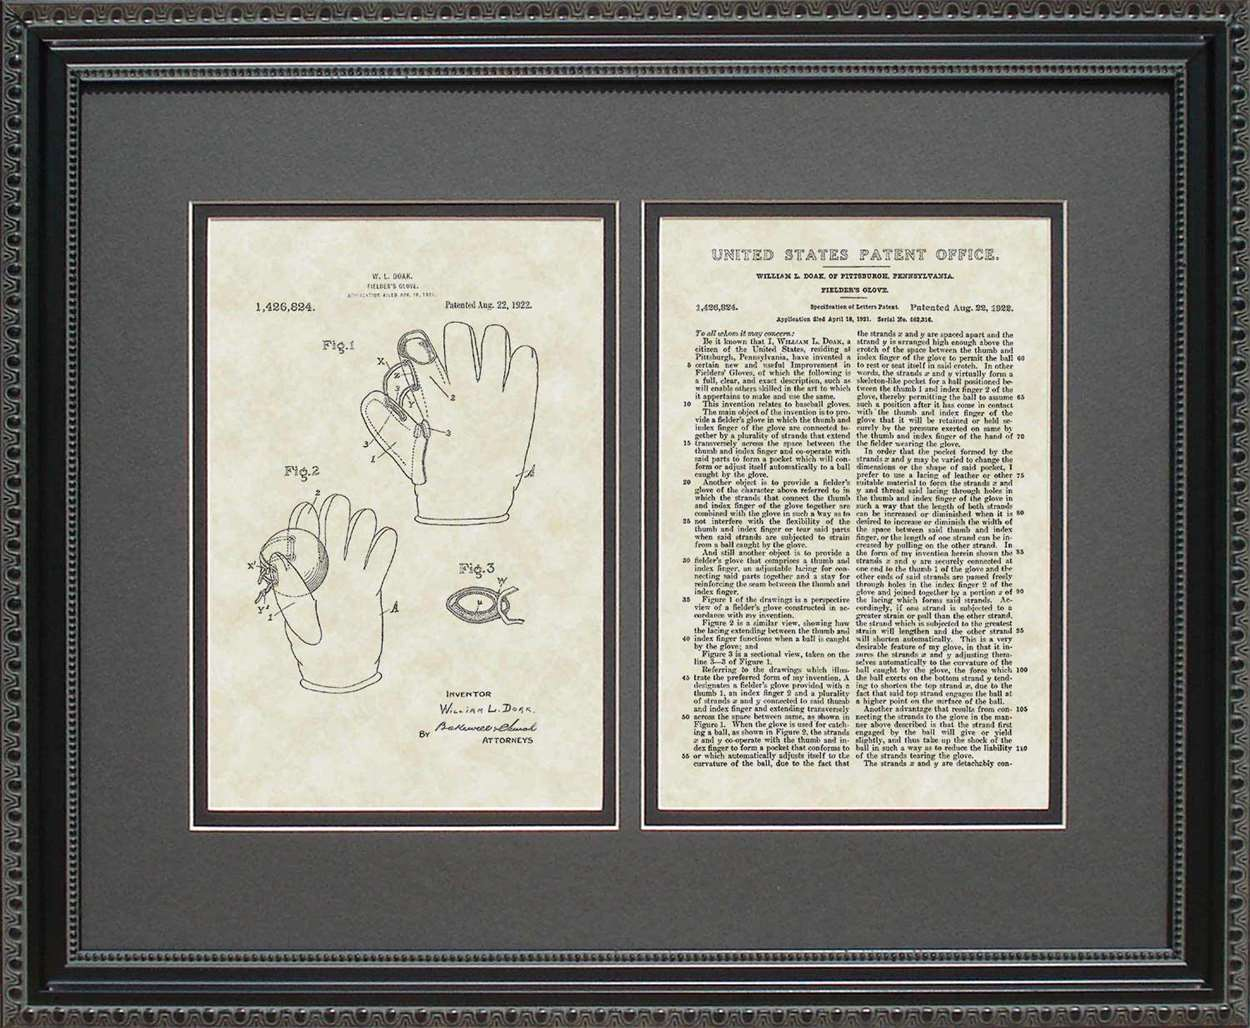 Baseball Glove Patent, Art & Copy, Doak, 1922, 16x20